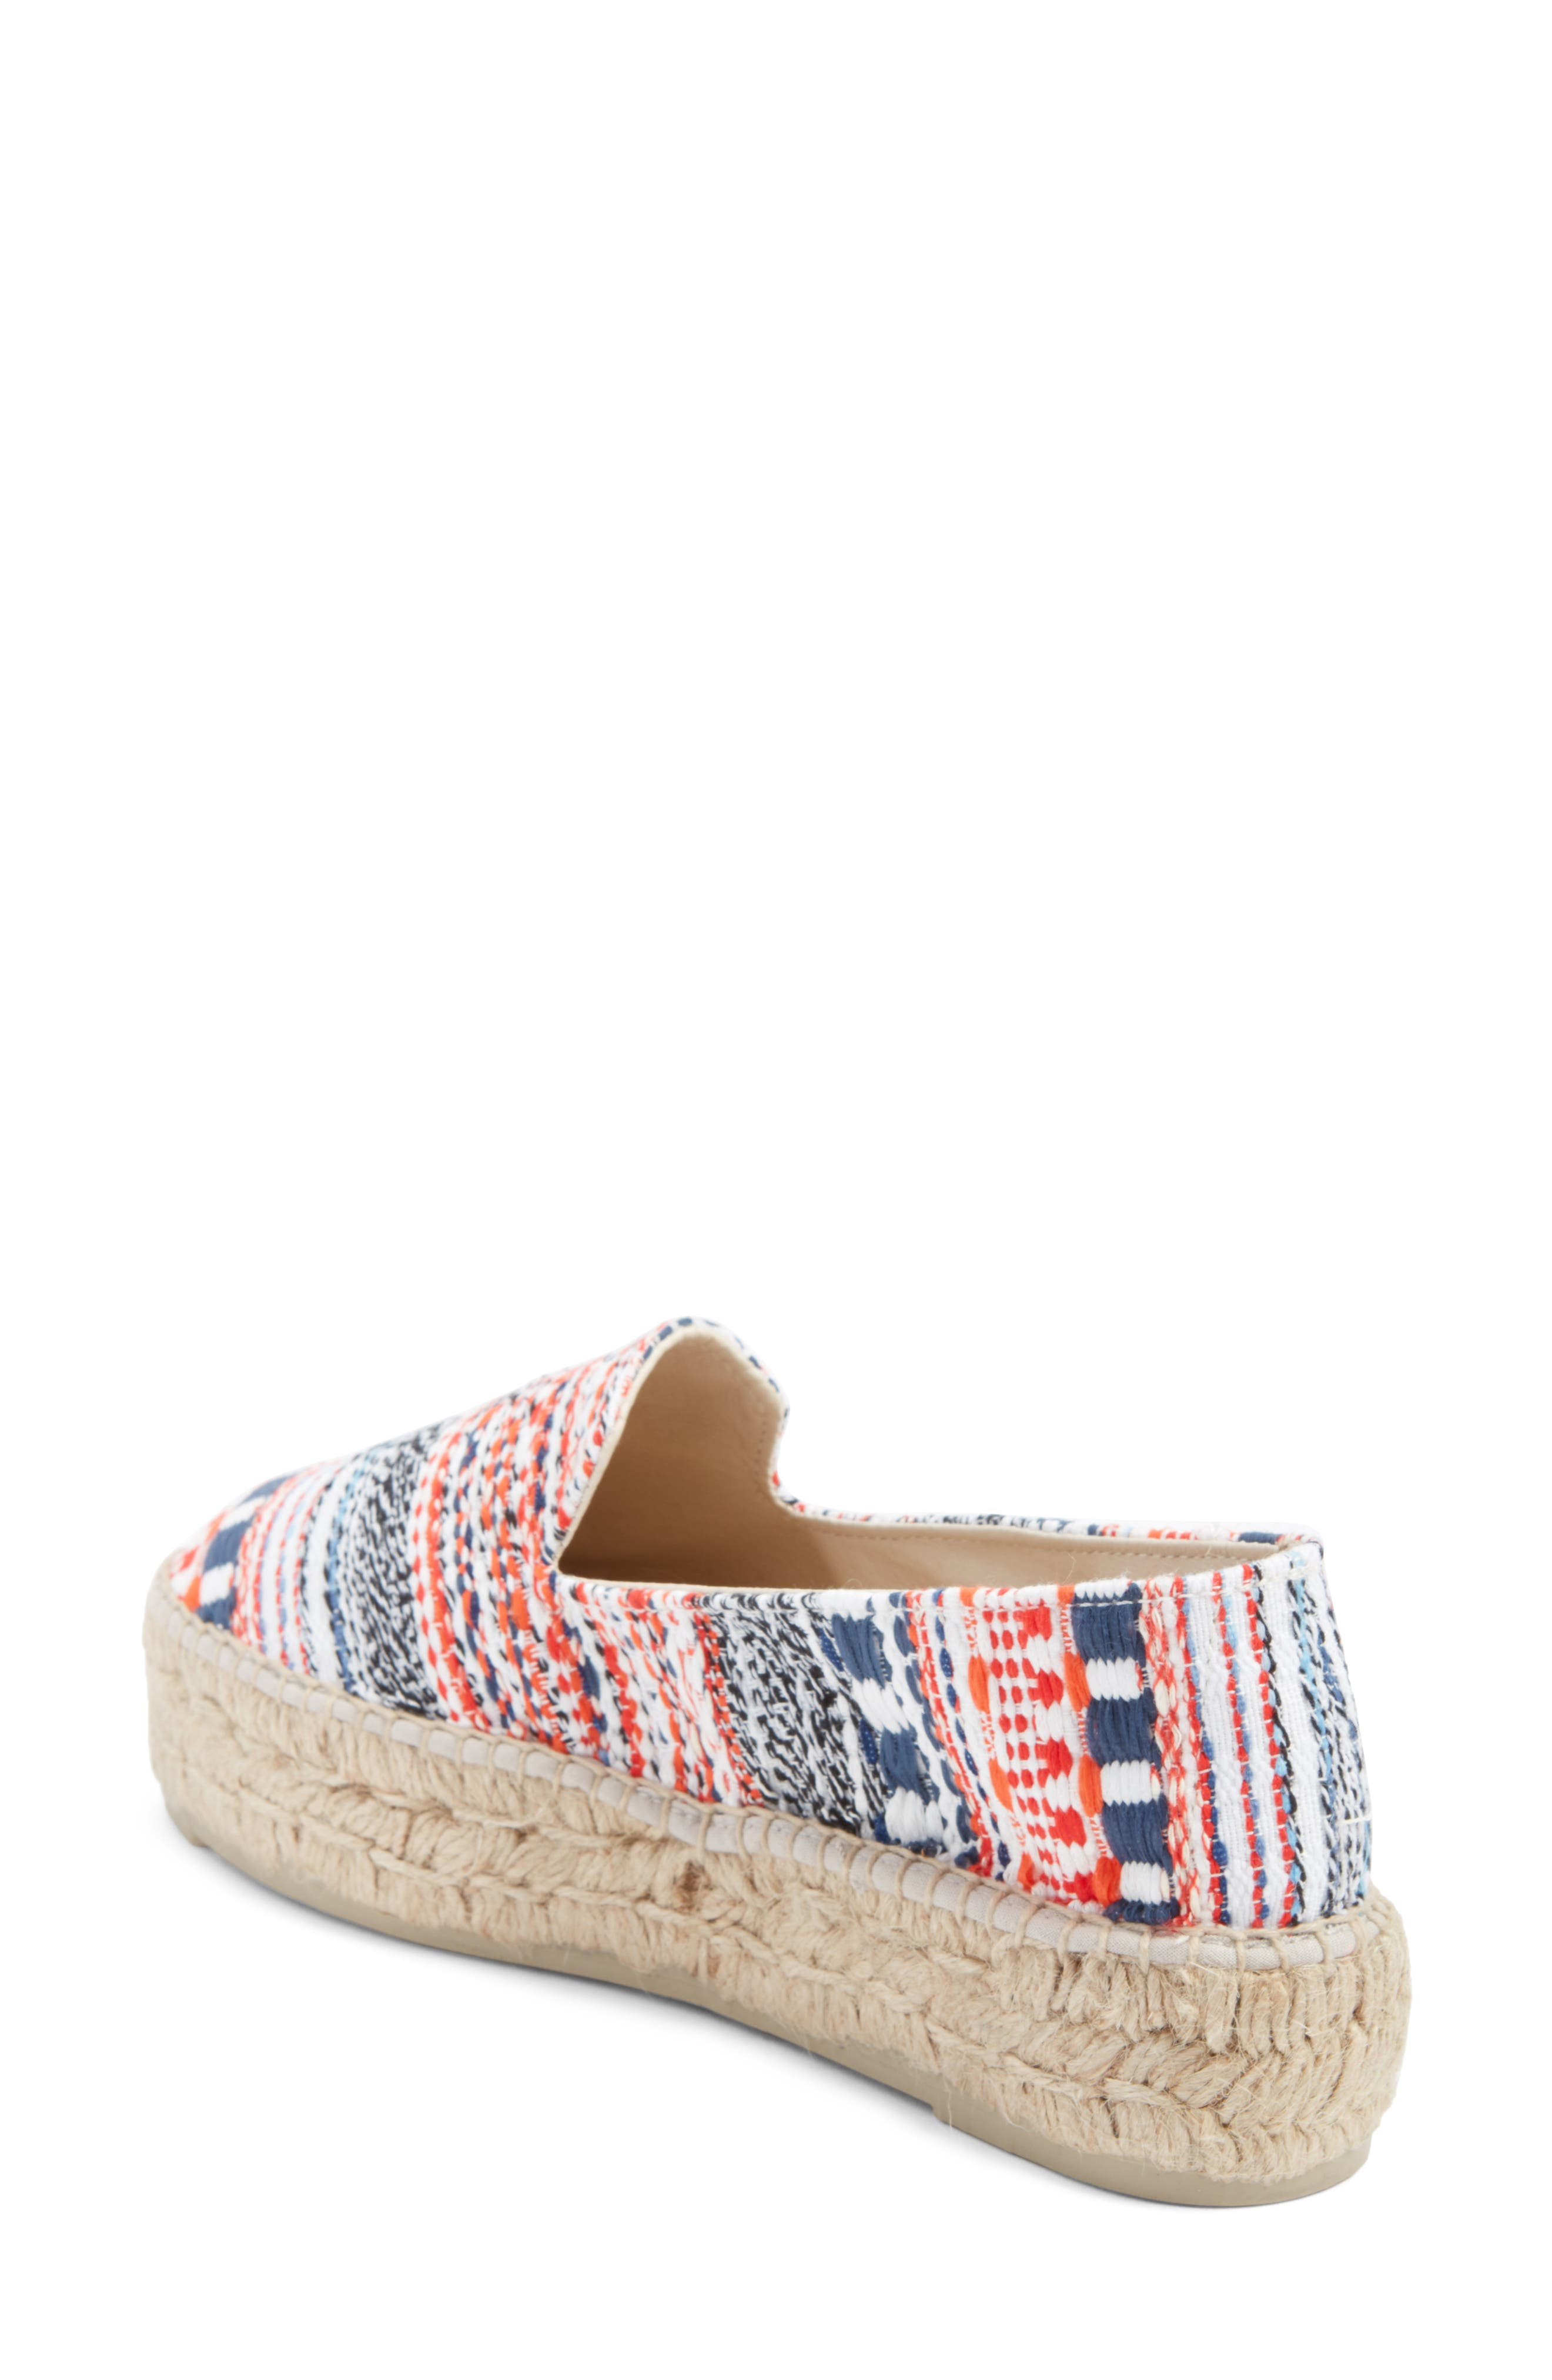 MANEBÍ Yucatan Platform Espadrille Slip-On,                             Alternate thumbnail 2, color,                             420